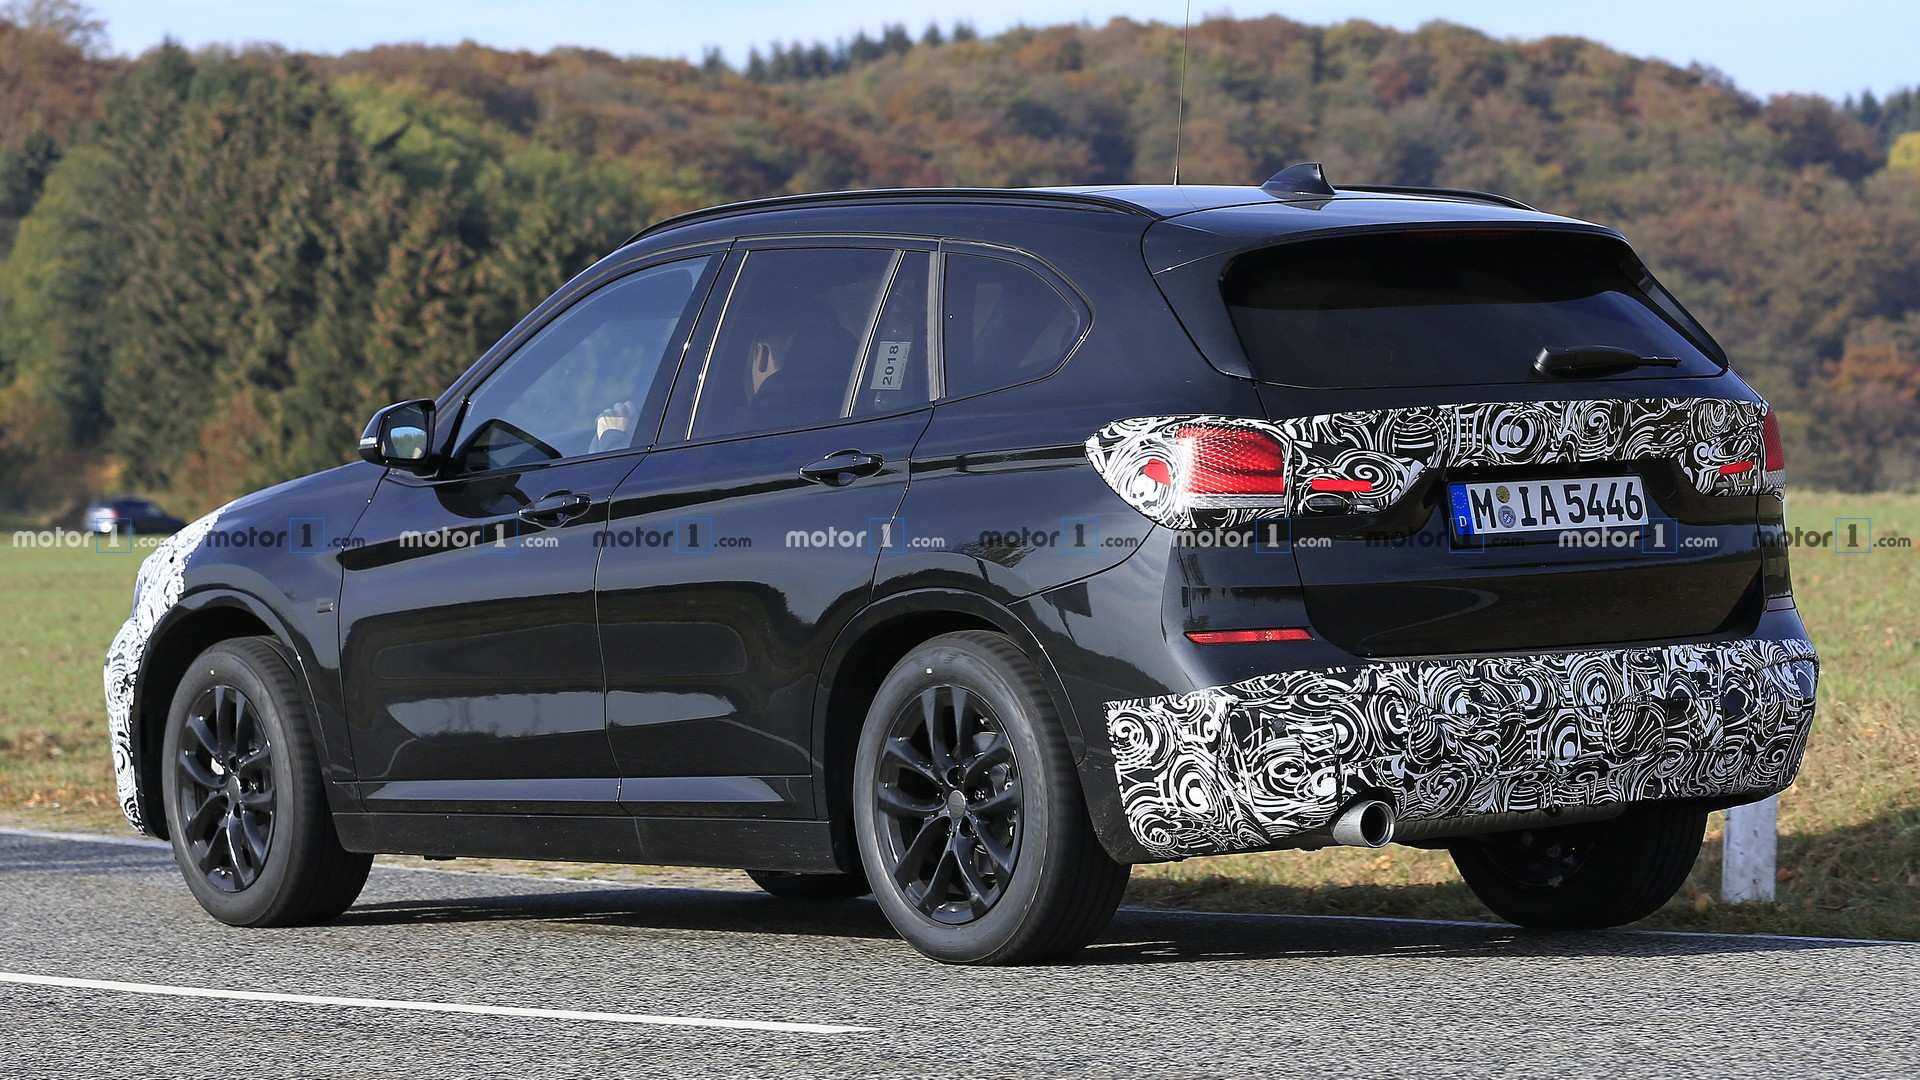 Spied Bmw X1 Getting Ready For A Minor Makeover